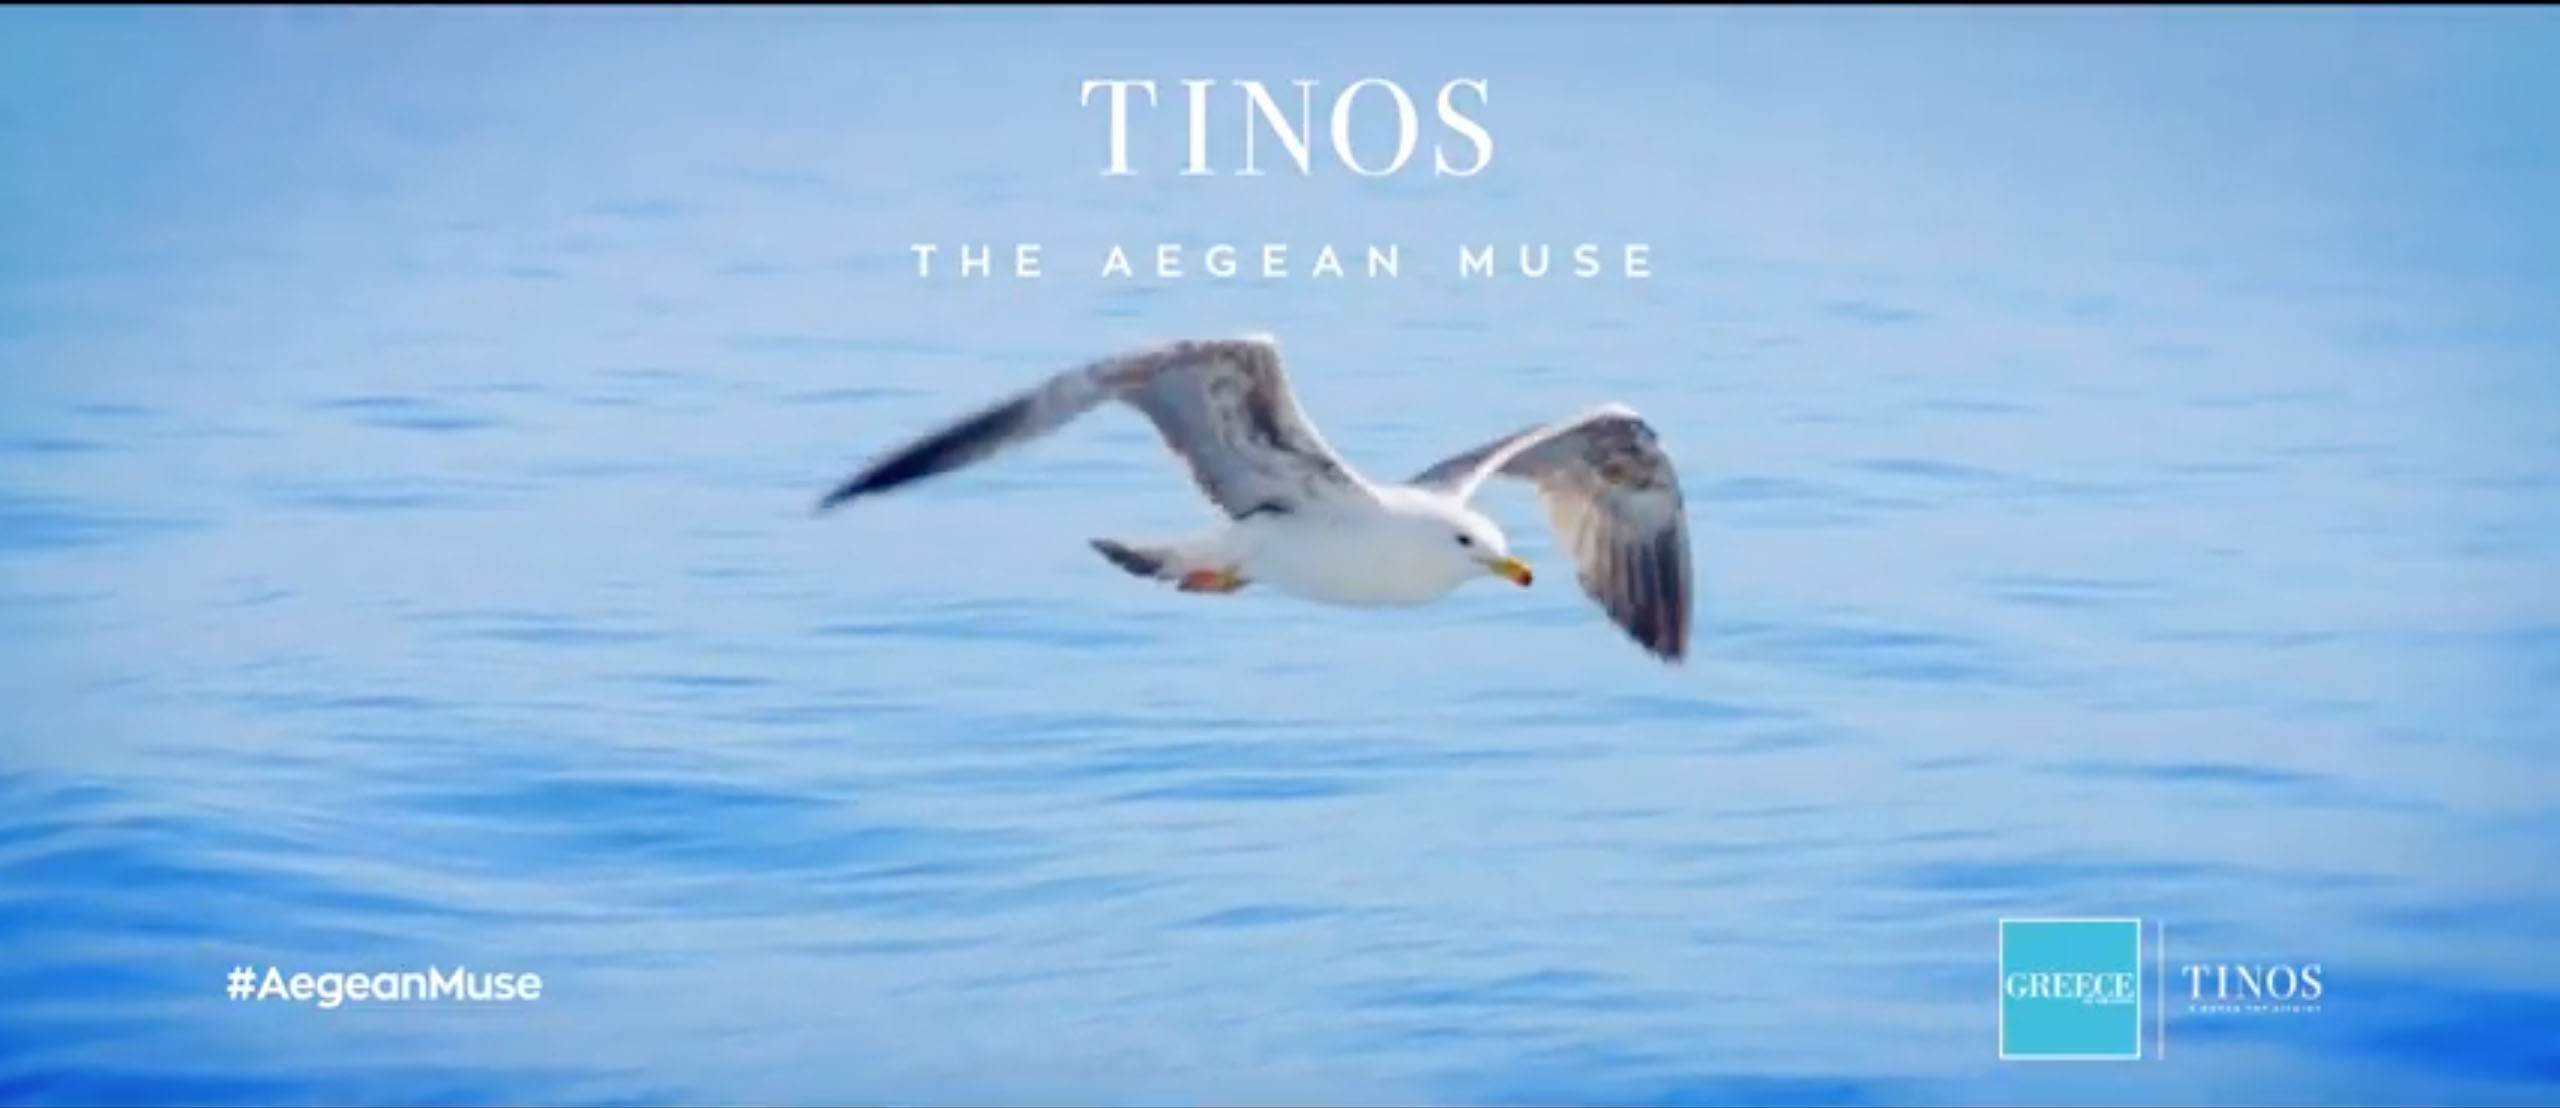 Tinos - The Aegean Muse